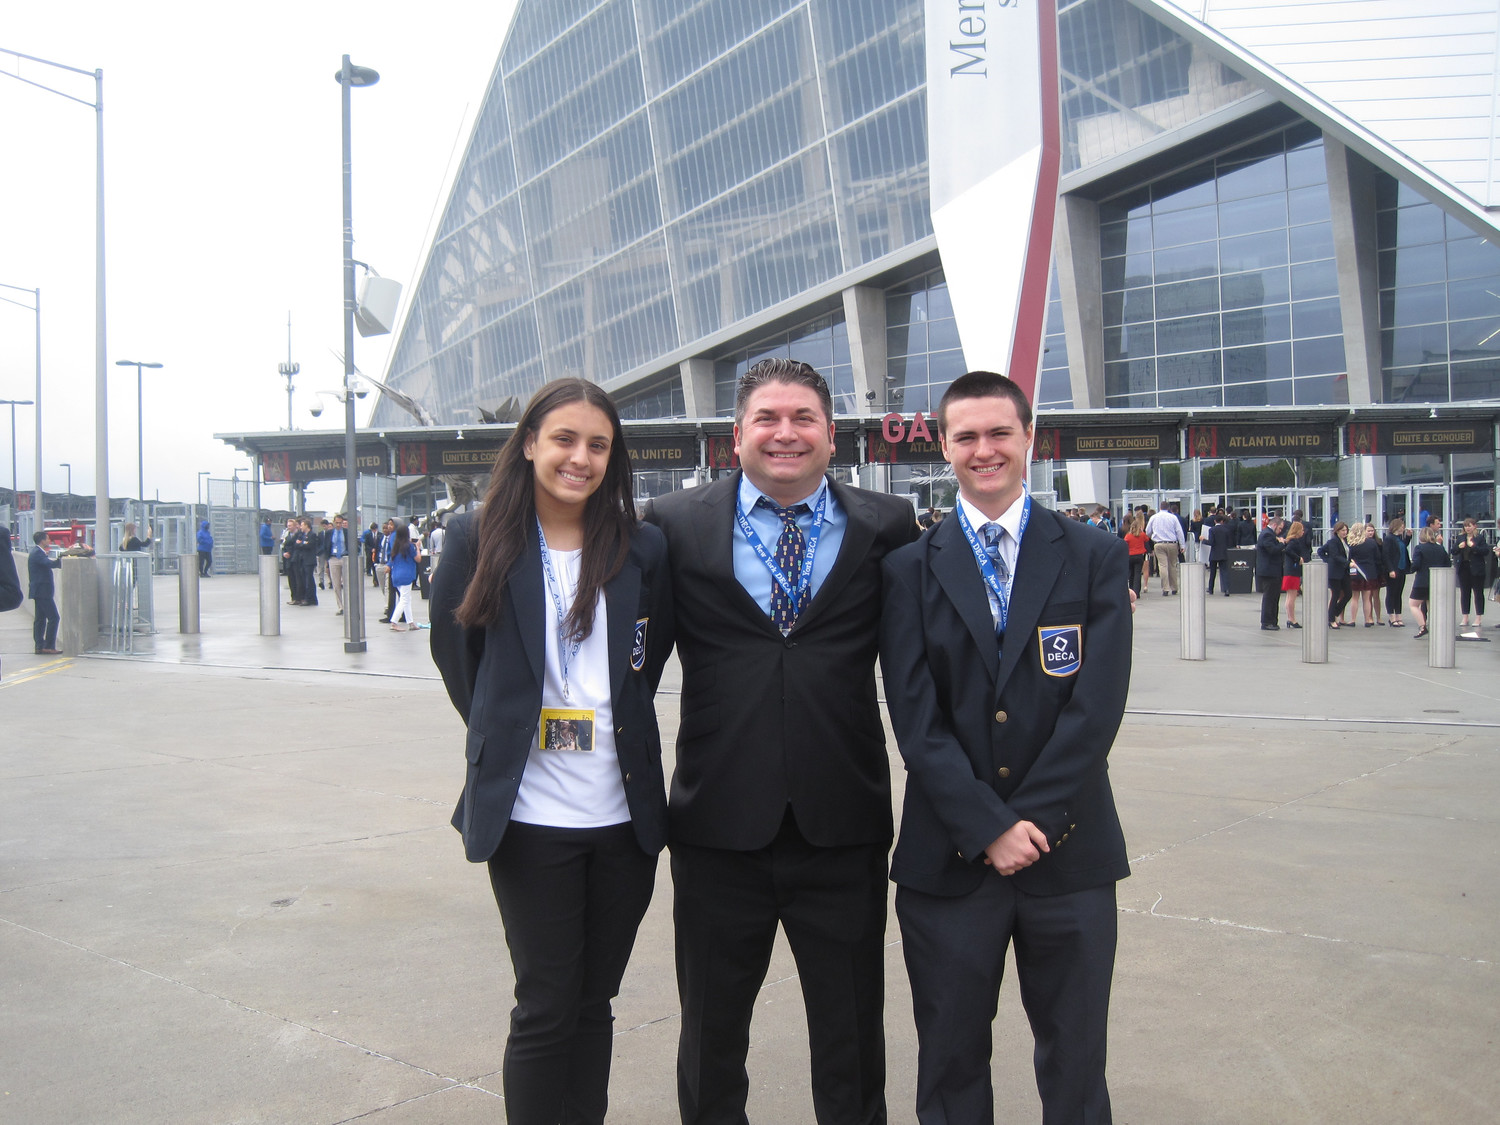 Two Lawrence High School students took part in the international DECA competition in the category of Hospitality & Tourism Professional Selling in Atlanta last month. From left freshman Danielle Hance, DECA advisor Mark Albin and junior John Loughlin Jr.